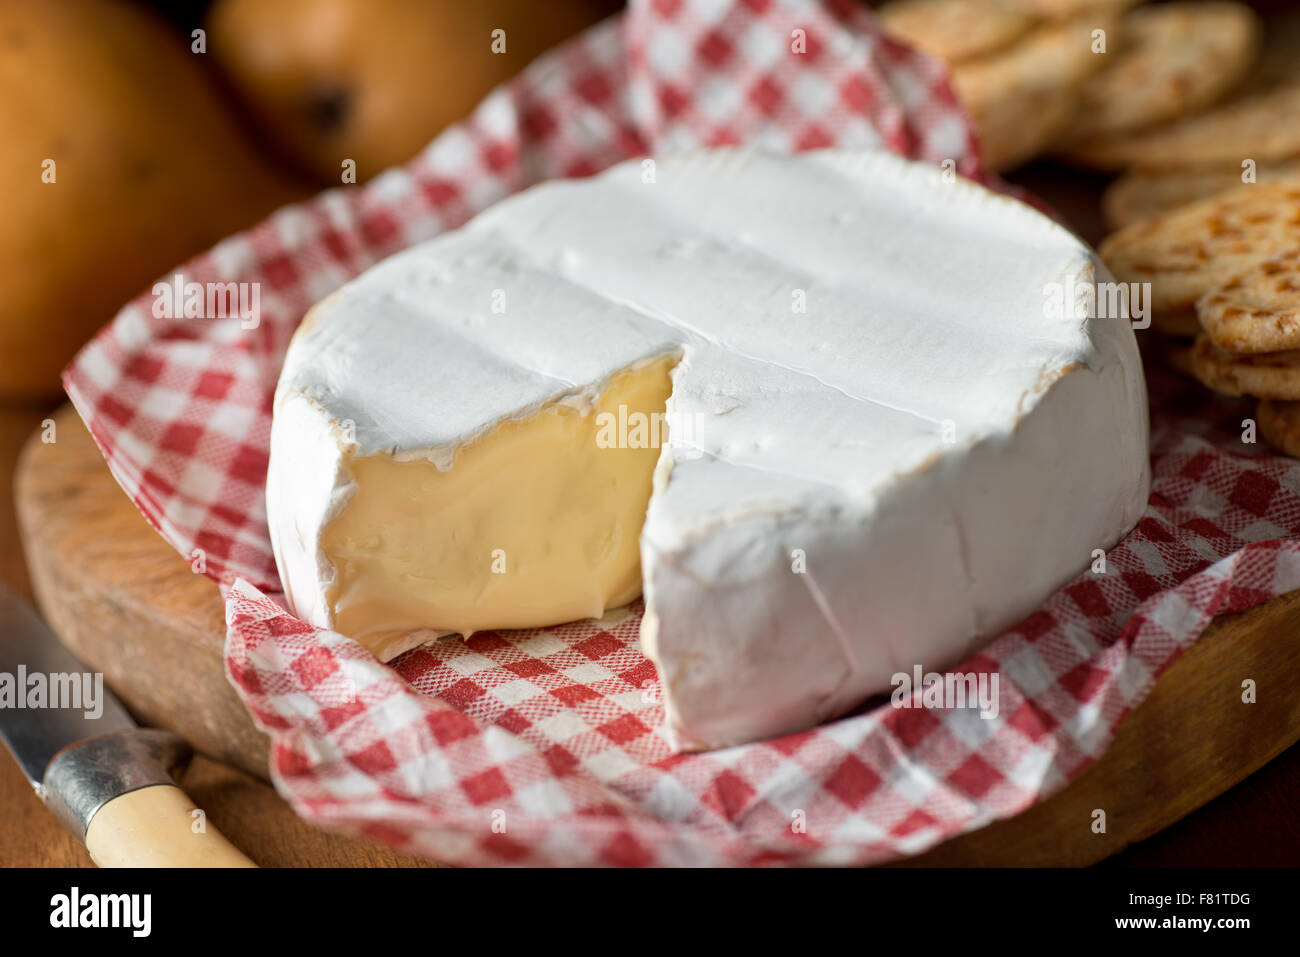 Delicious creamy wheel of brie cheese with crackers and pears. - Stock Image